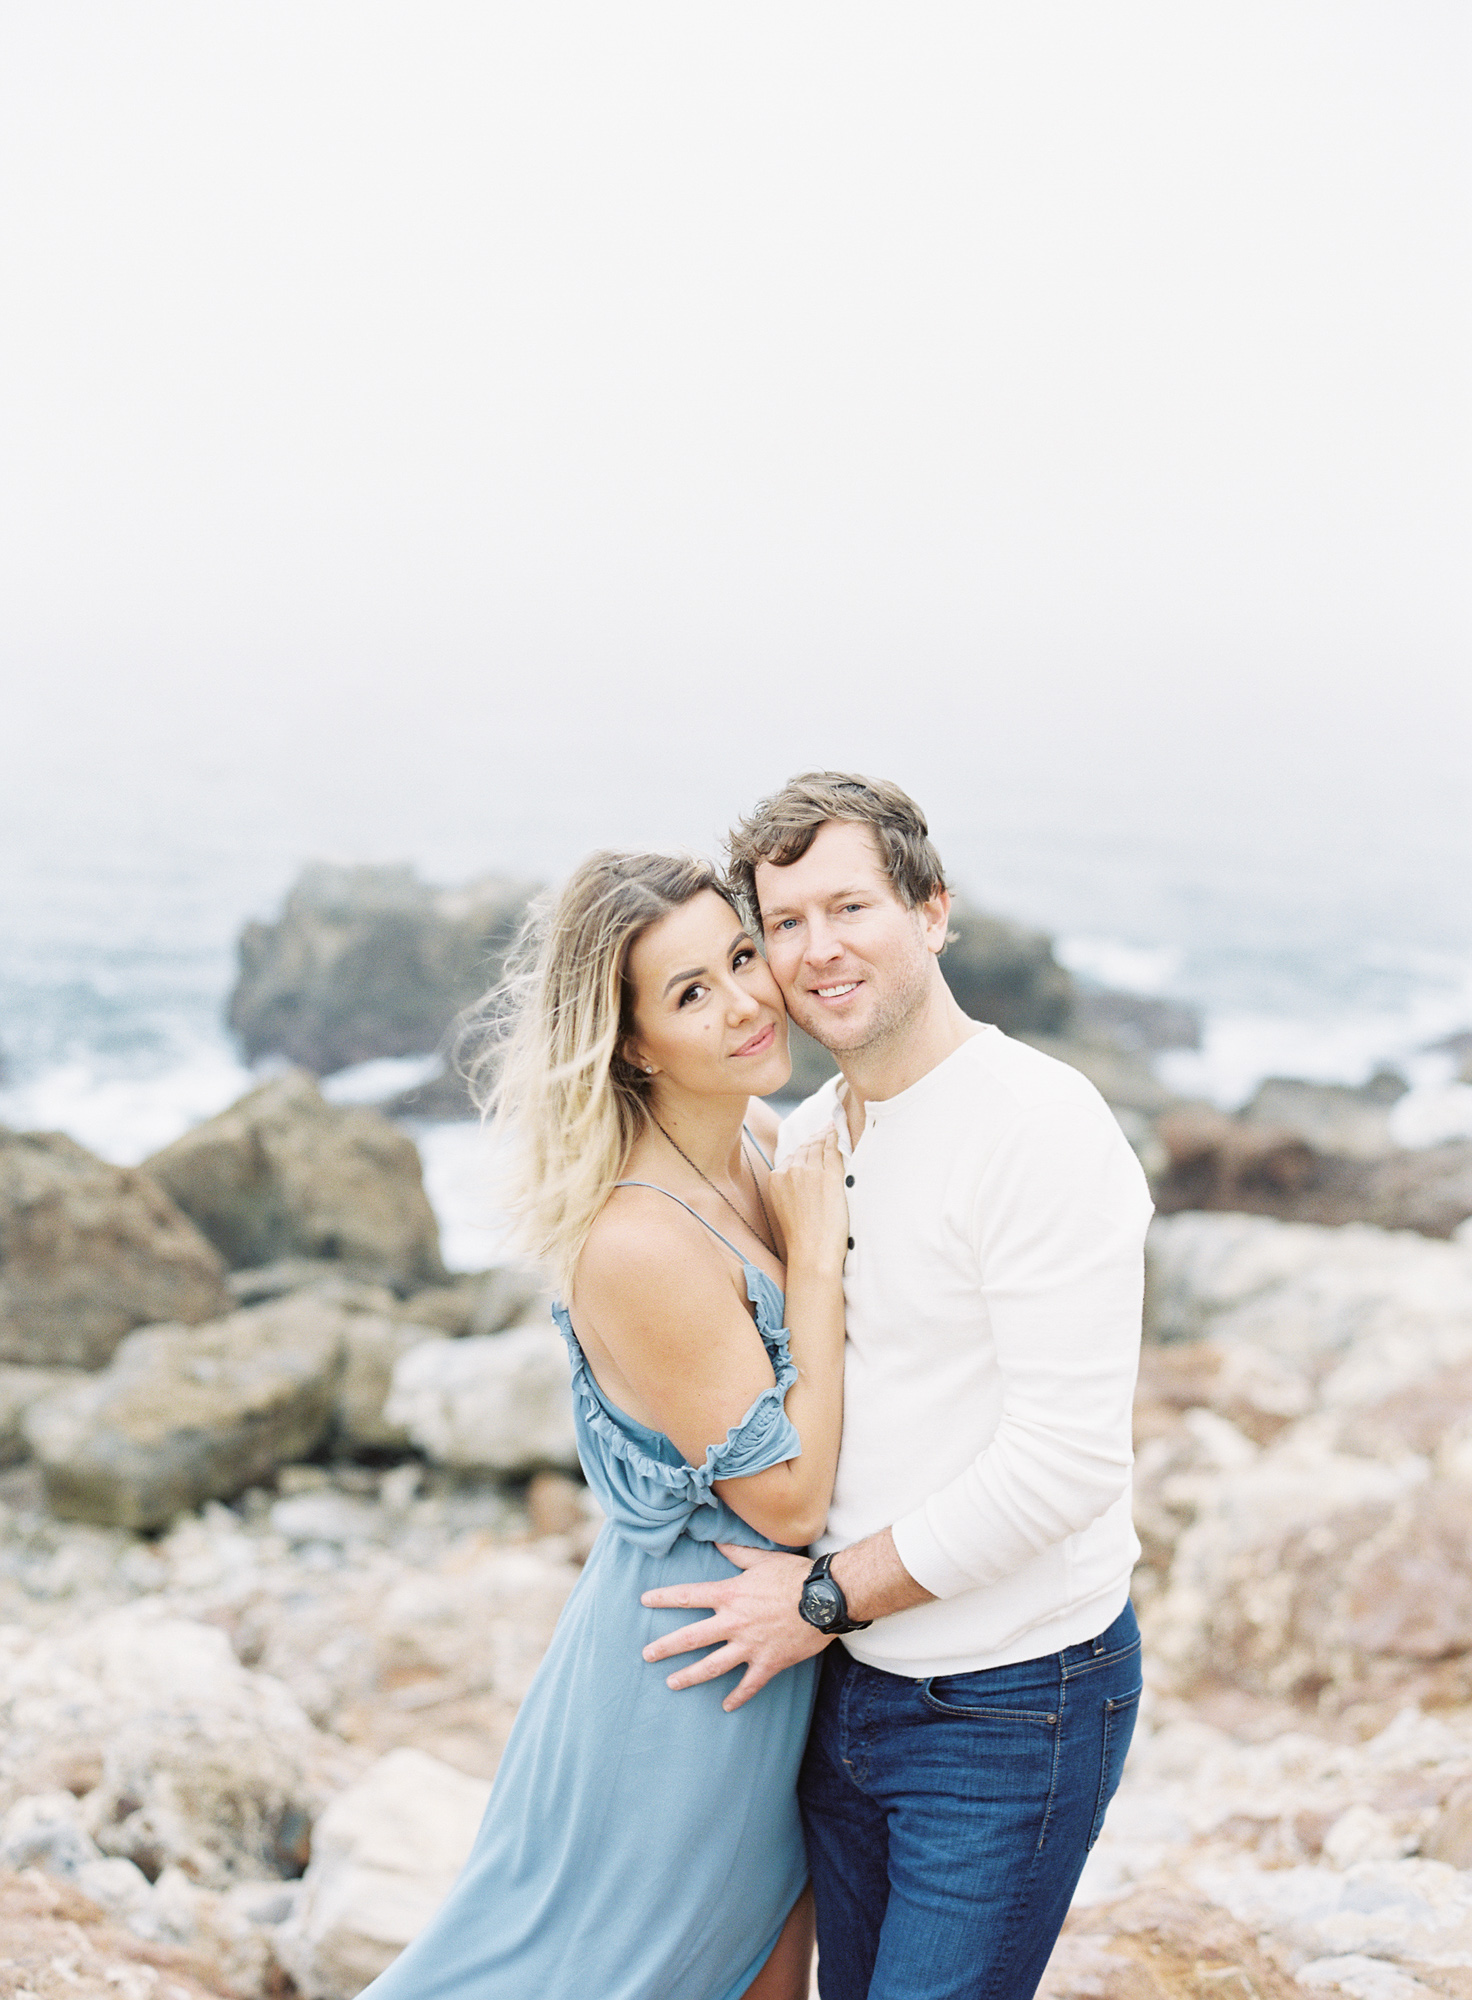 Terranea-engagement-session-los-angeles-20.jpg